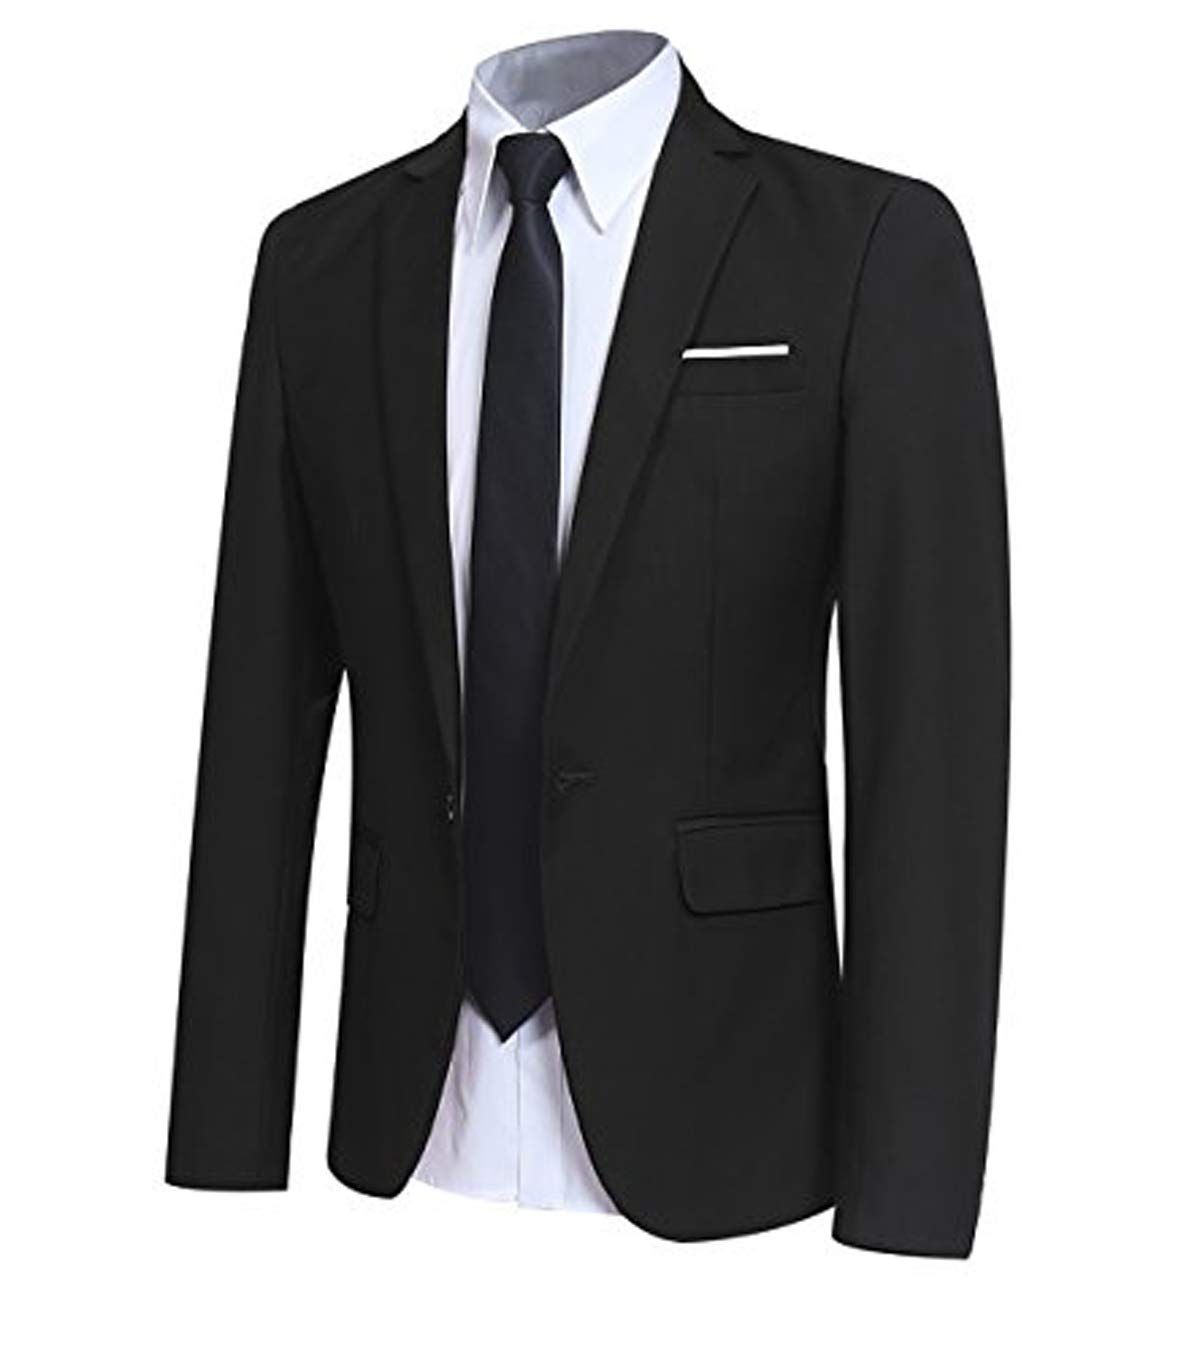 Costumes Top Selon Les Homme Vestes Notes Et lcuTJ31FK